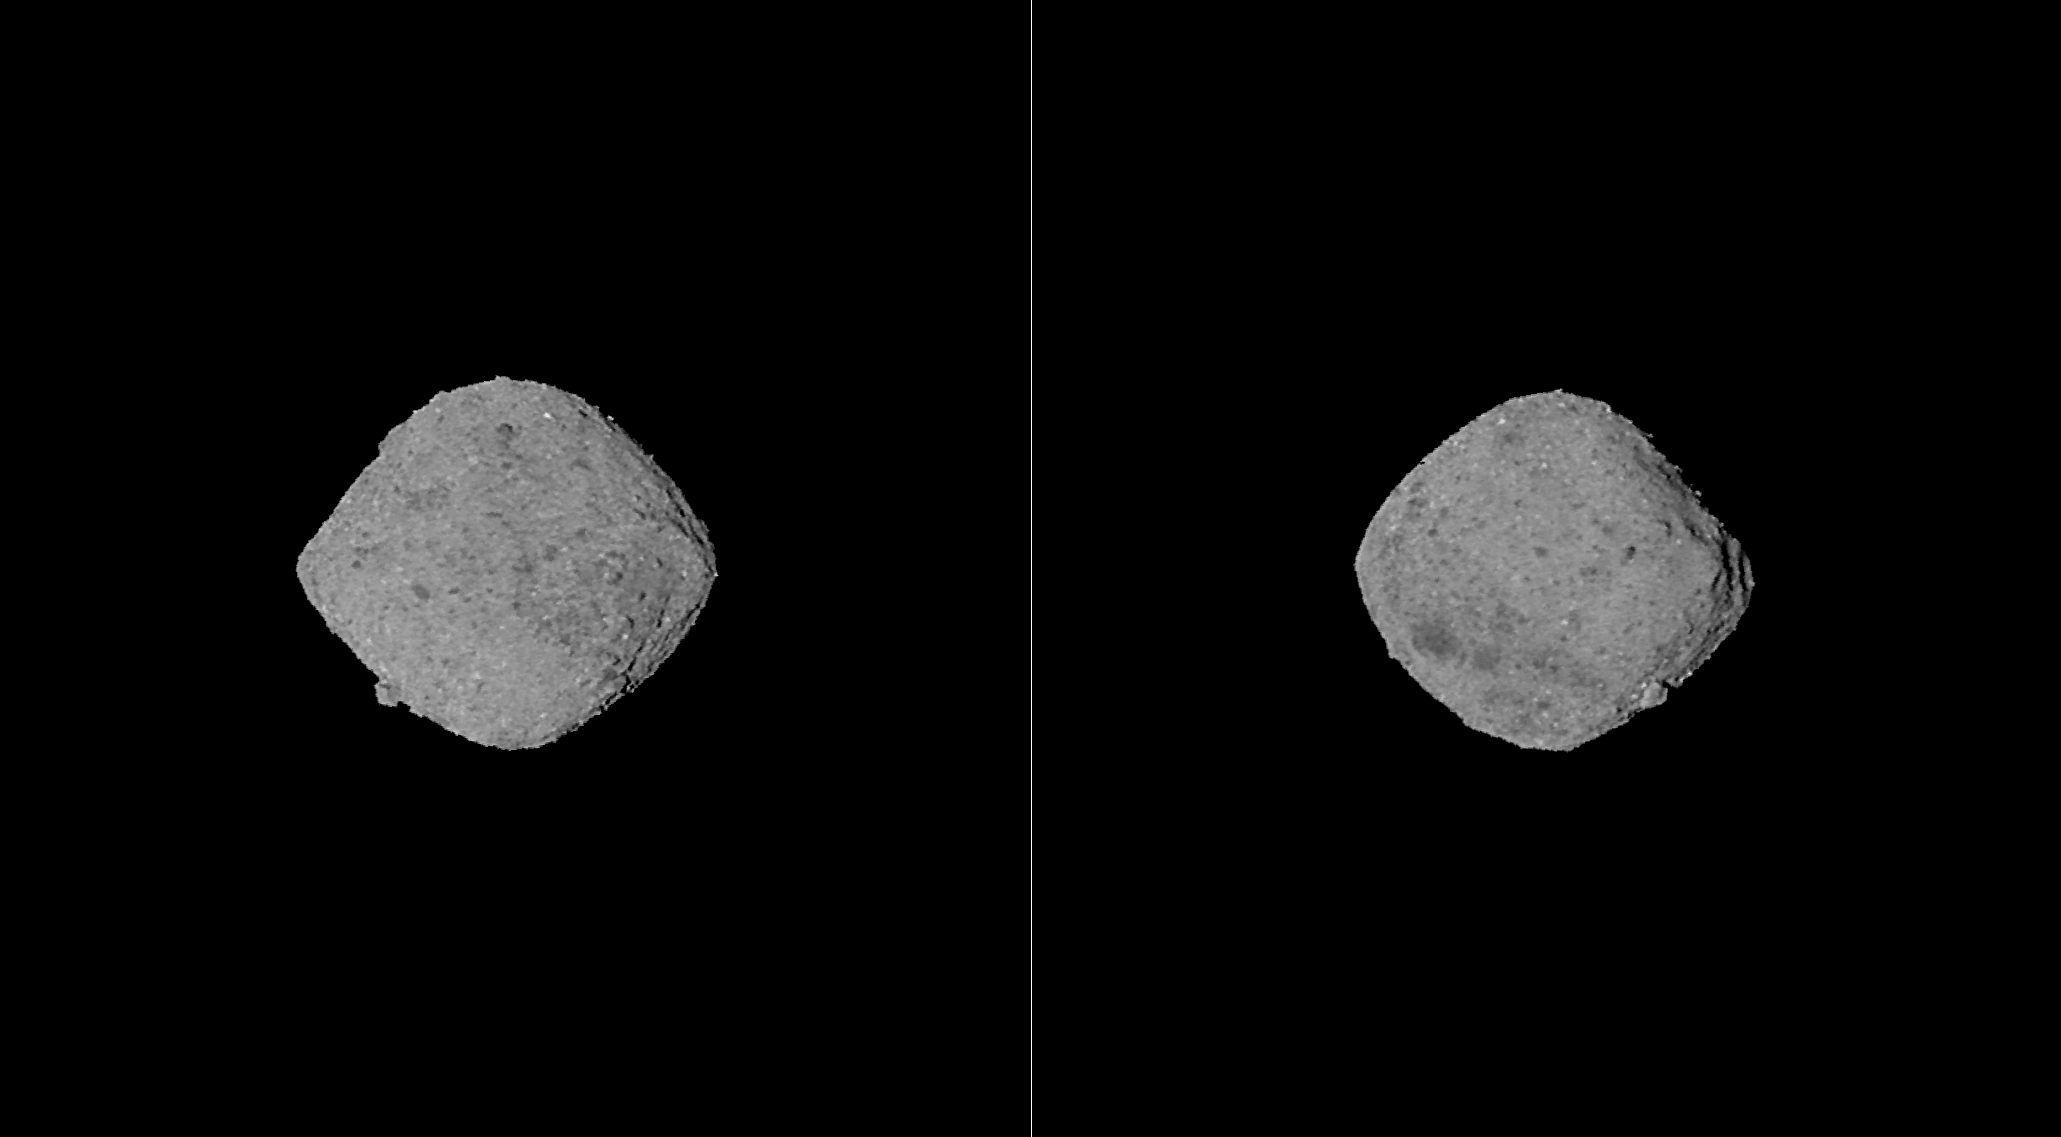 Two sides of Bennu as imaged by the OSIRIS-REx approaching closer by the hour! Image credit: NASA/Goddard/University of Arizona